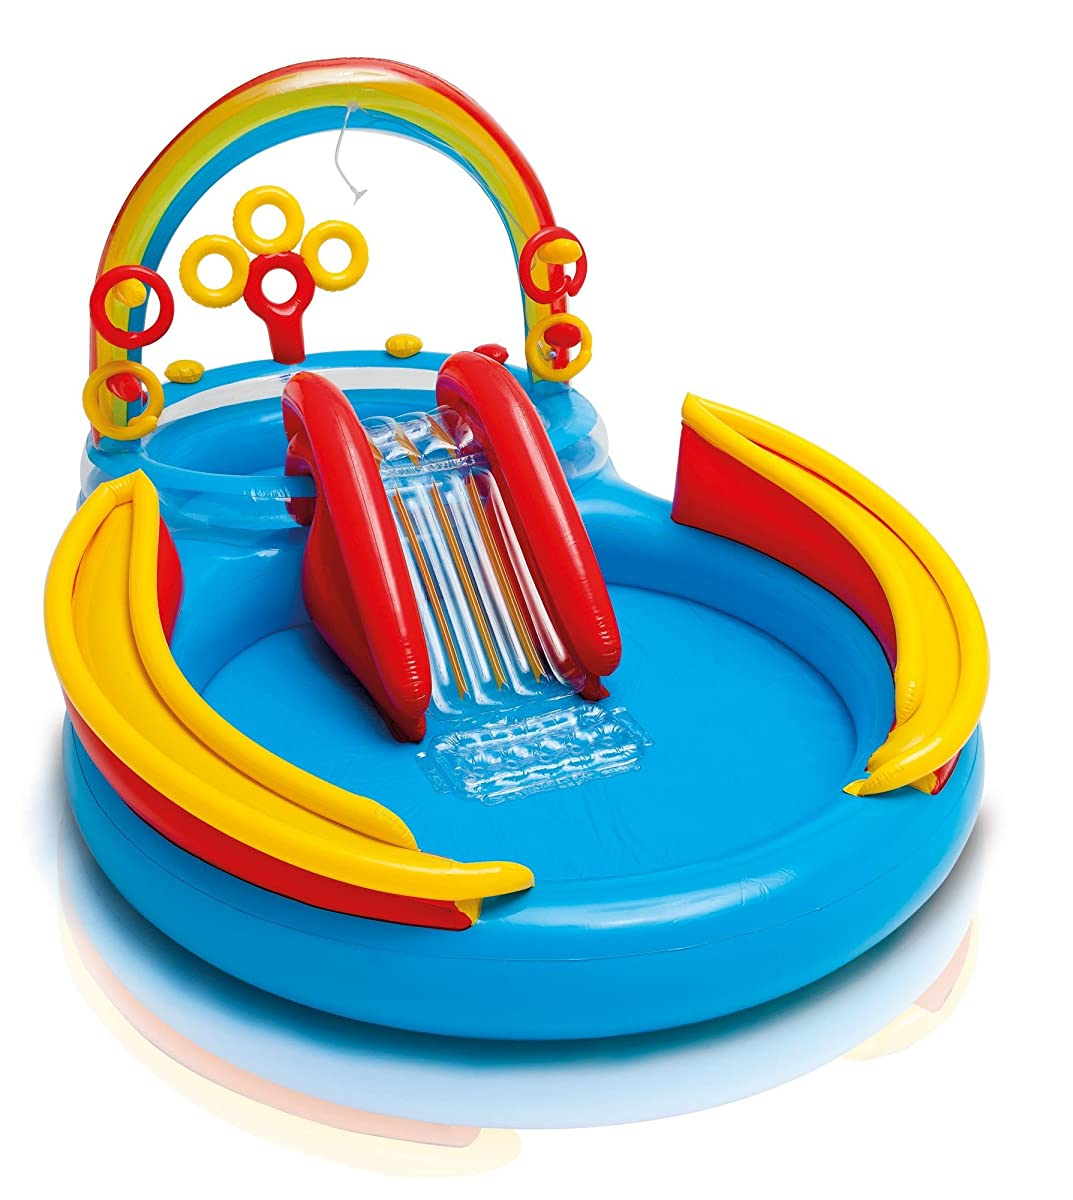 "Intex Rainbow Ring Inflatable Play Center, 117"" X 76"" X 53"", for Ages 2+"